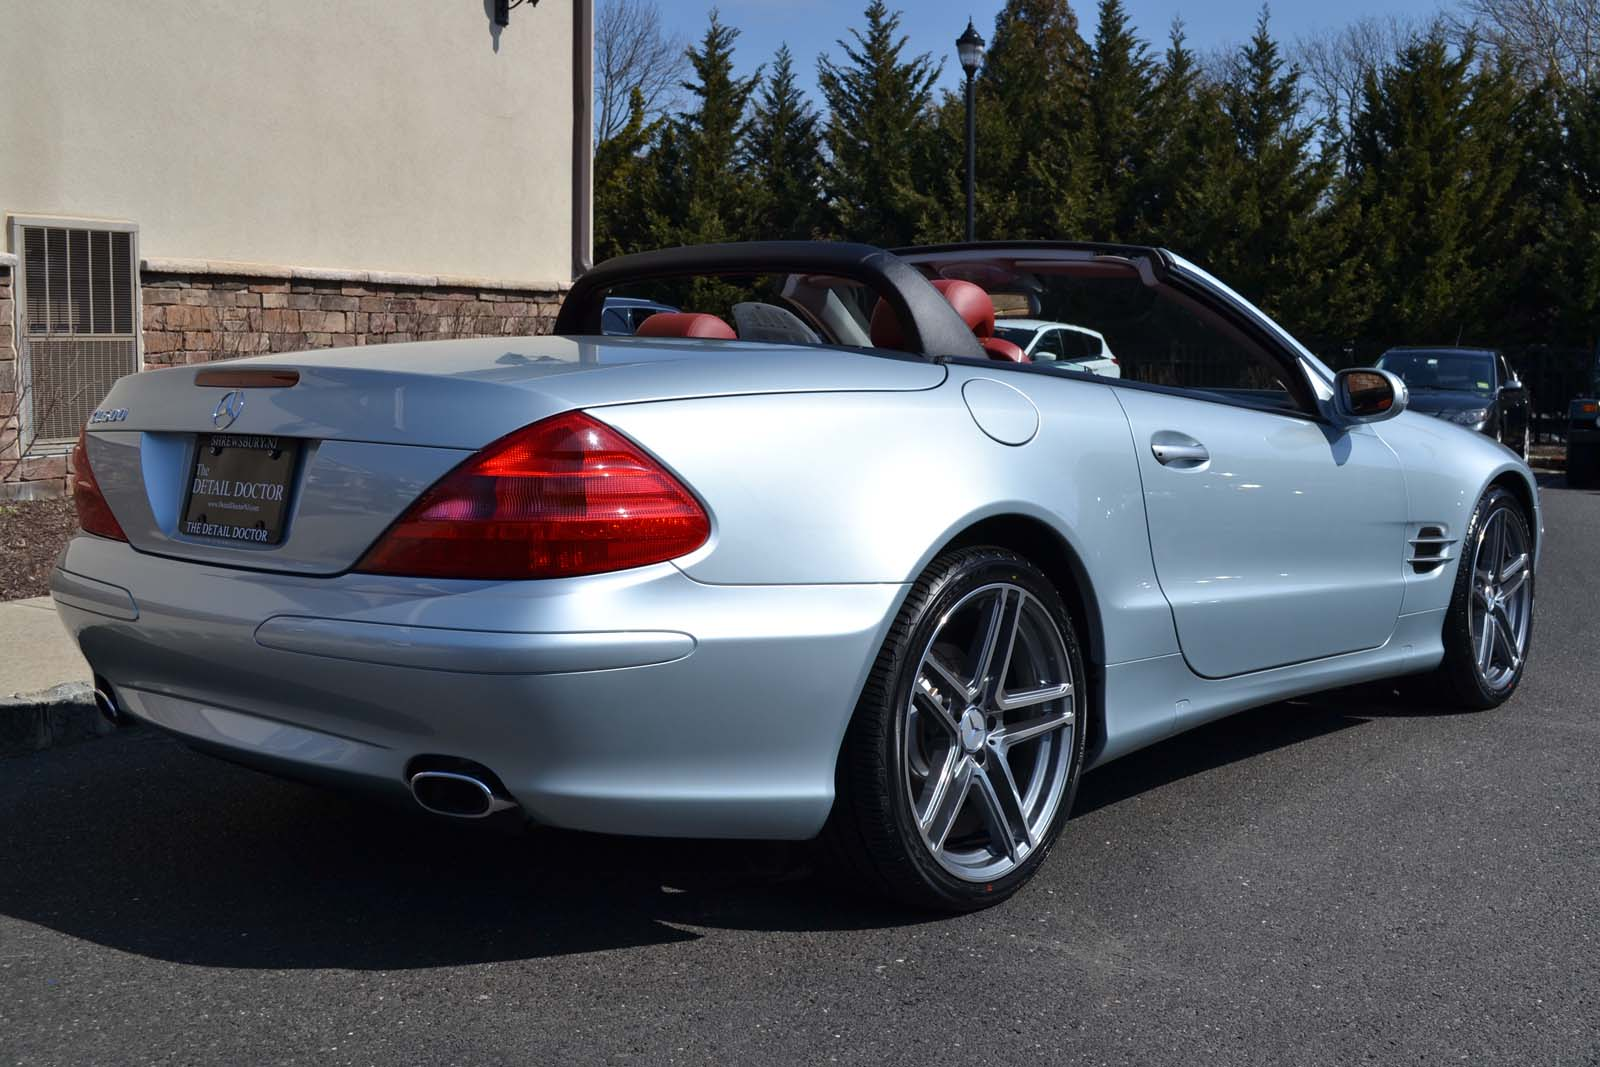 Mercedes Benz Pre Owned >> 2003 Mercedes Benz SL 500R Pre-Owned